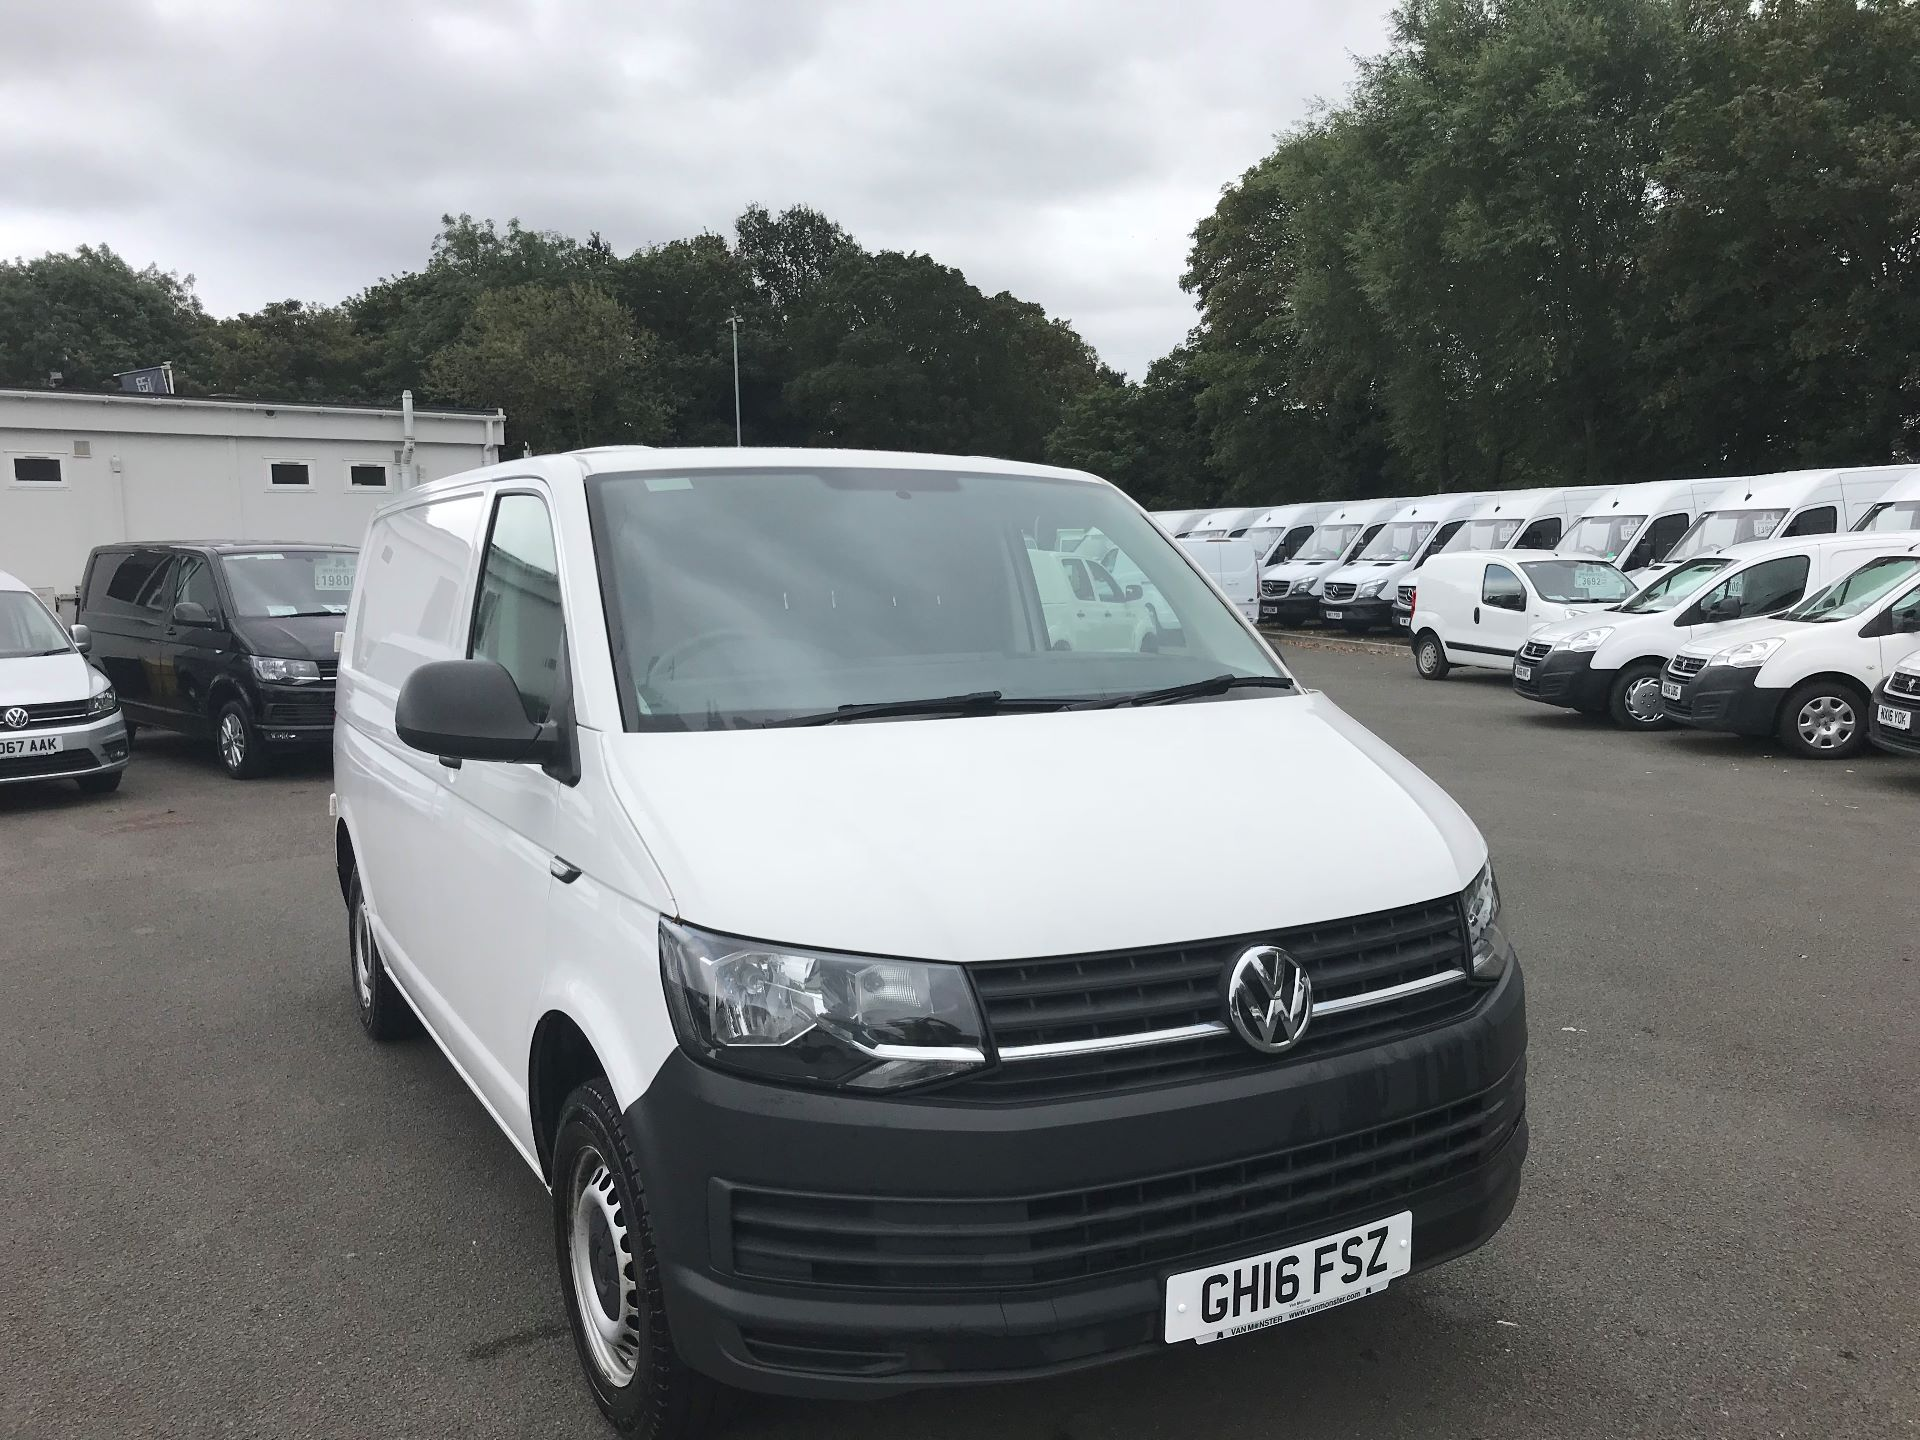 Volkswagen Transporter Vans for Sale | Van Monster